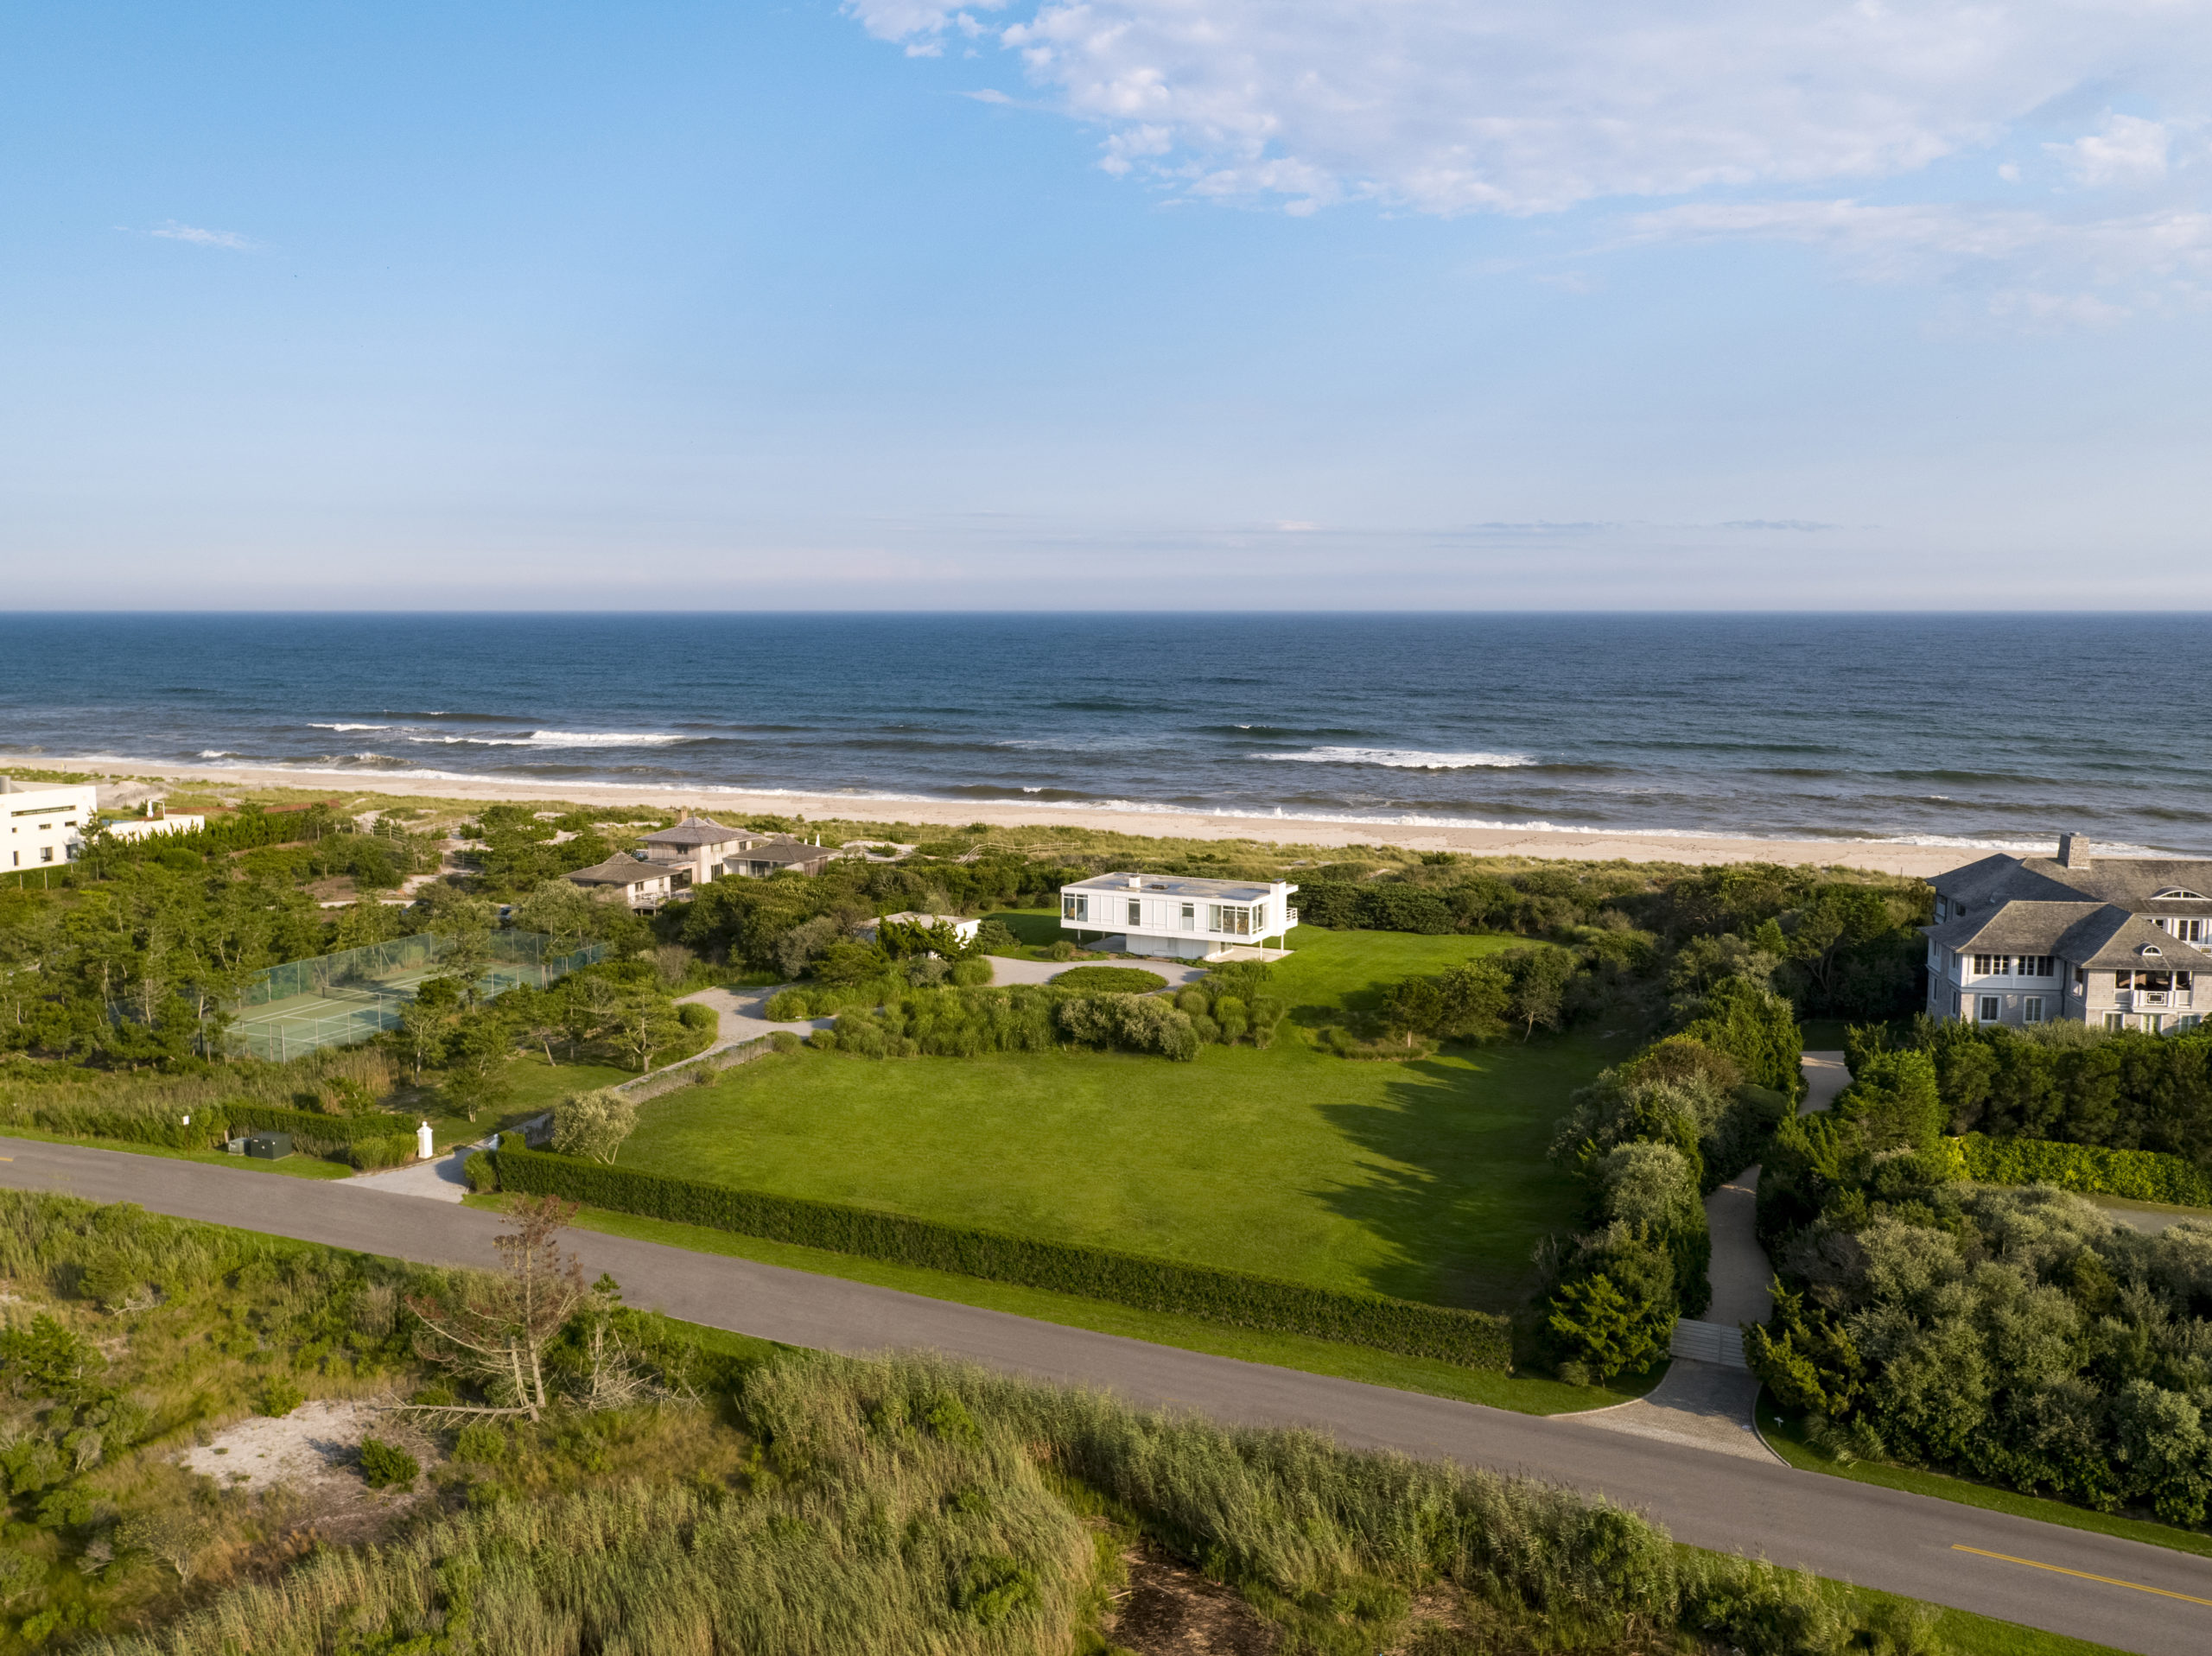 980 Meadow Lane, Southampton, the No. 4 Hamptons home sale of 2019.